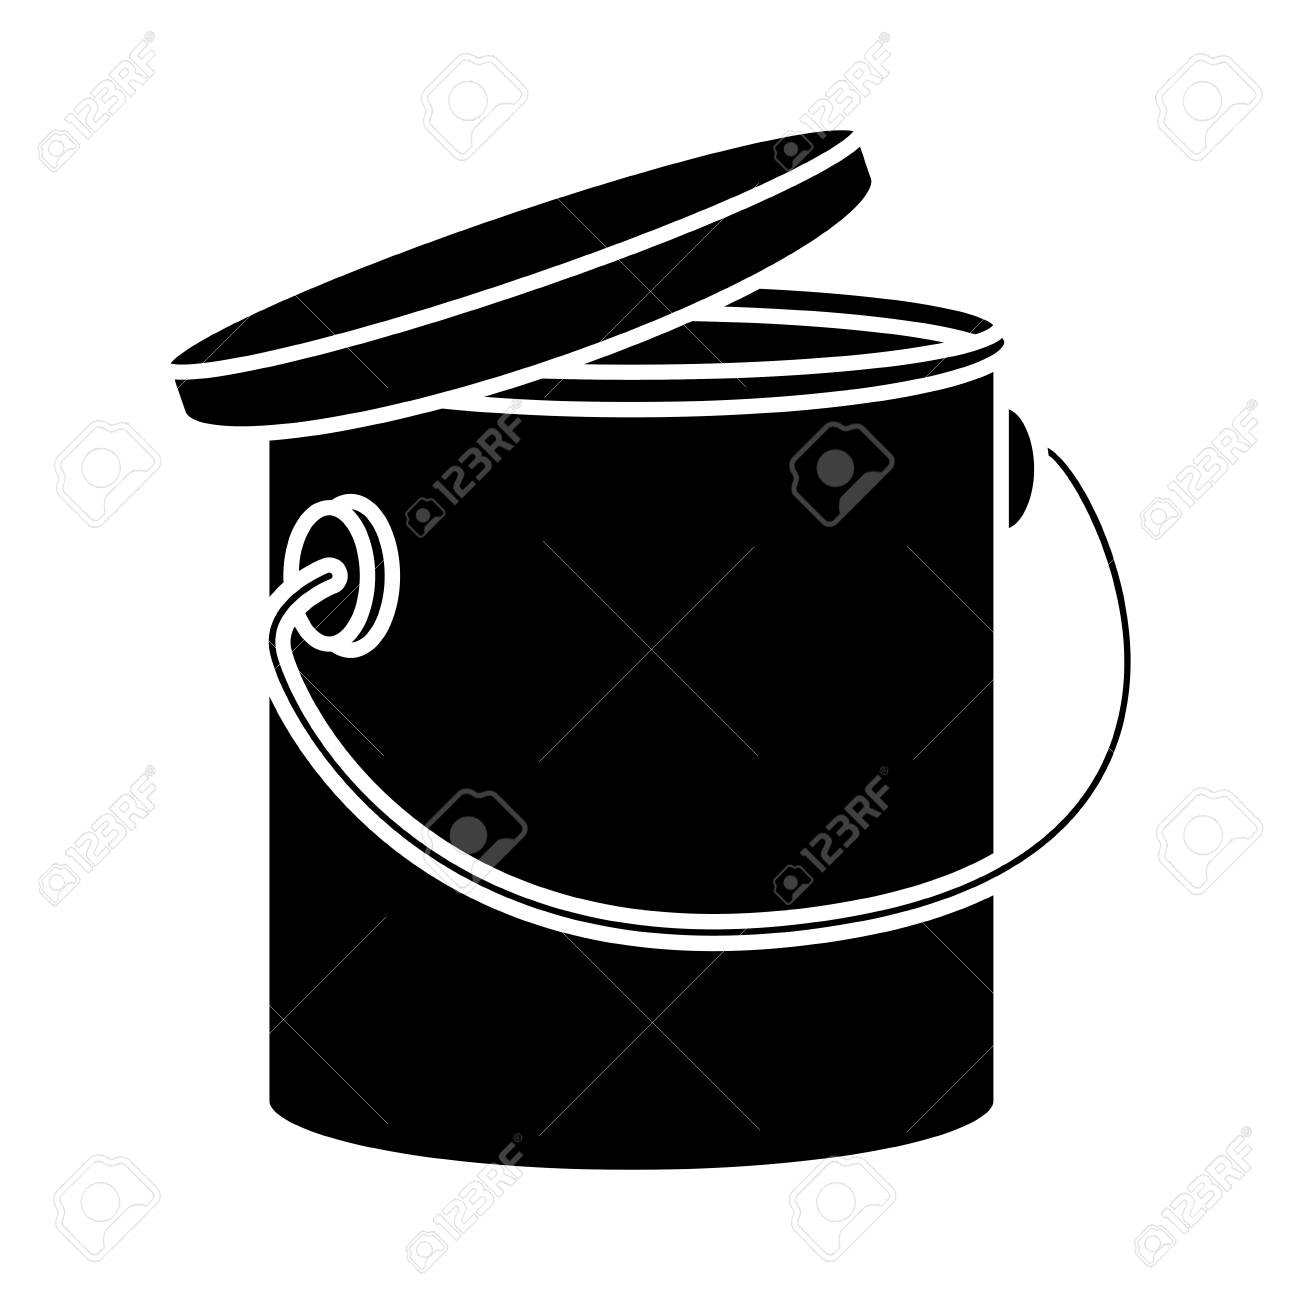 Paint Bucket Isolated Icon Vector Illustration Graphic Design Royalty Free Cliparts Vectors And Stock Illustration Image 86423590